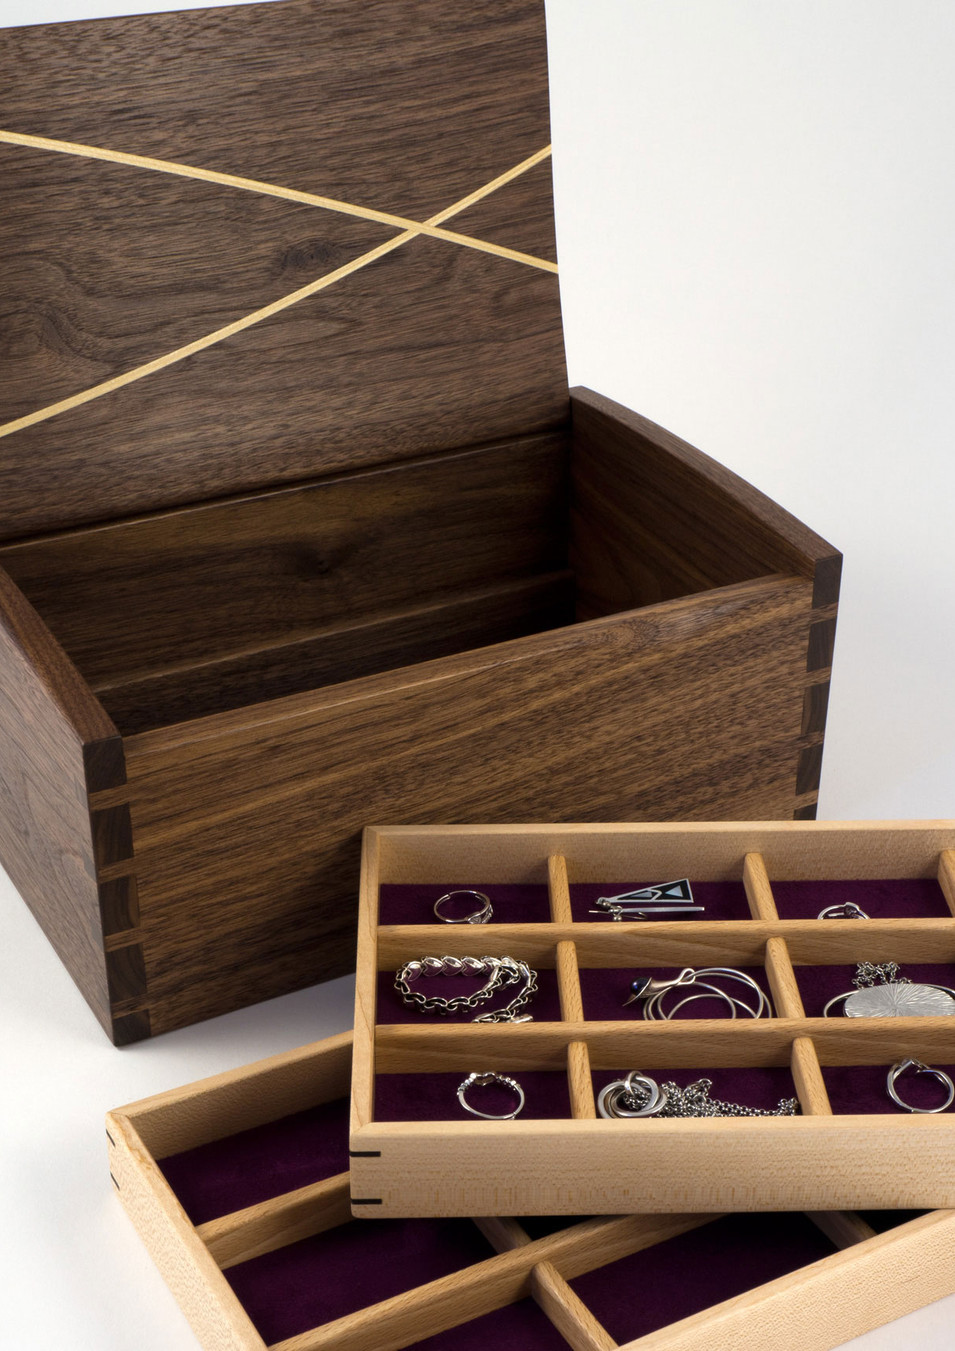 Jewellery box with two stoage trays